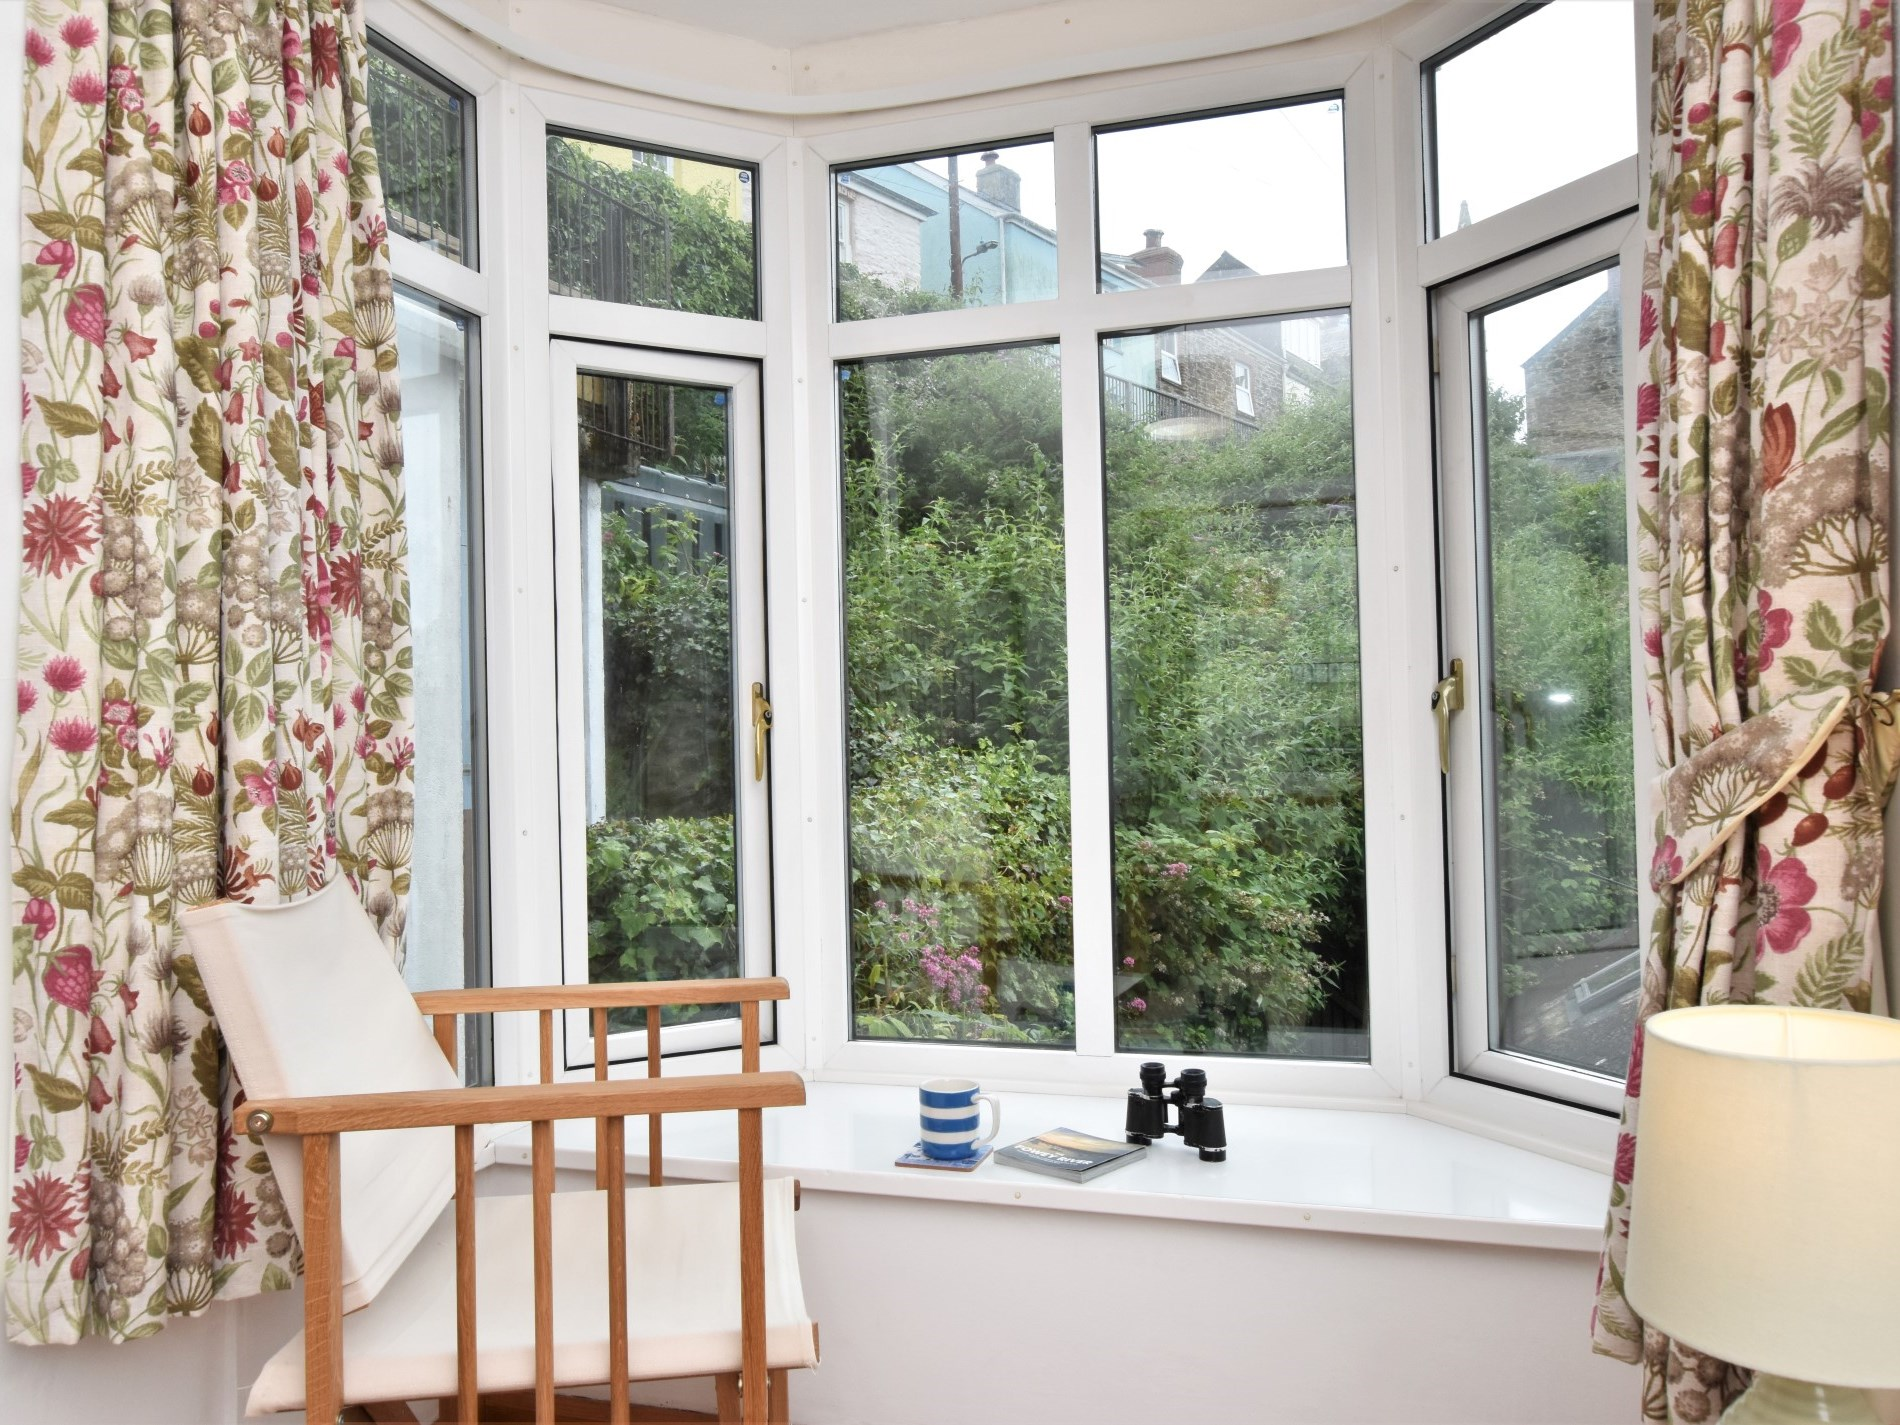 2 Bedroom Cottage in South Cornwall, Cornwall